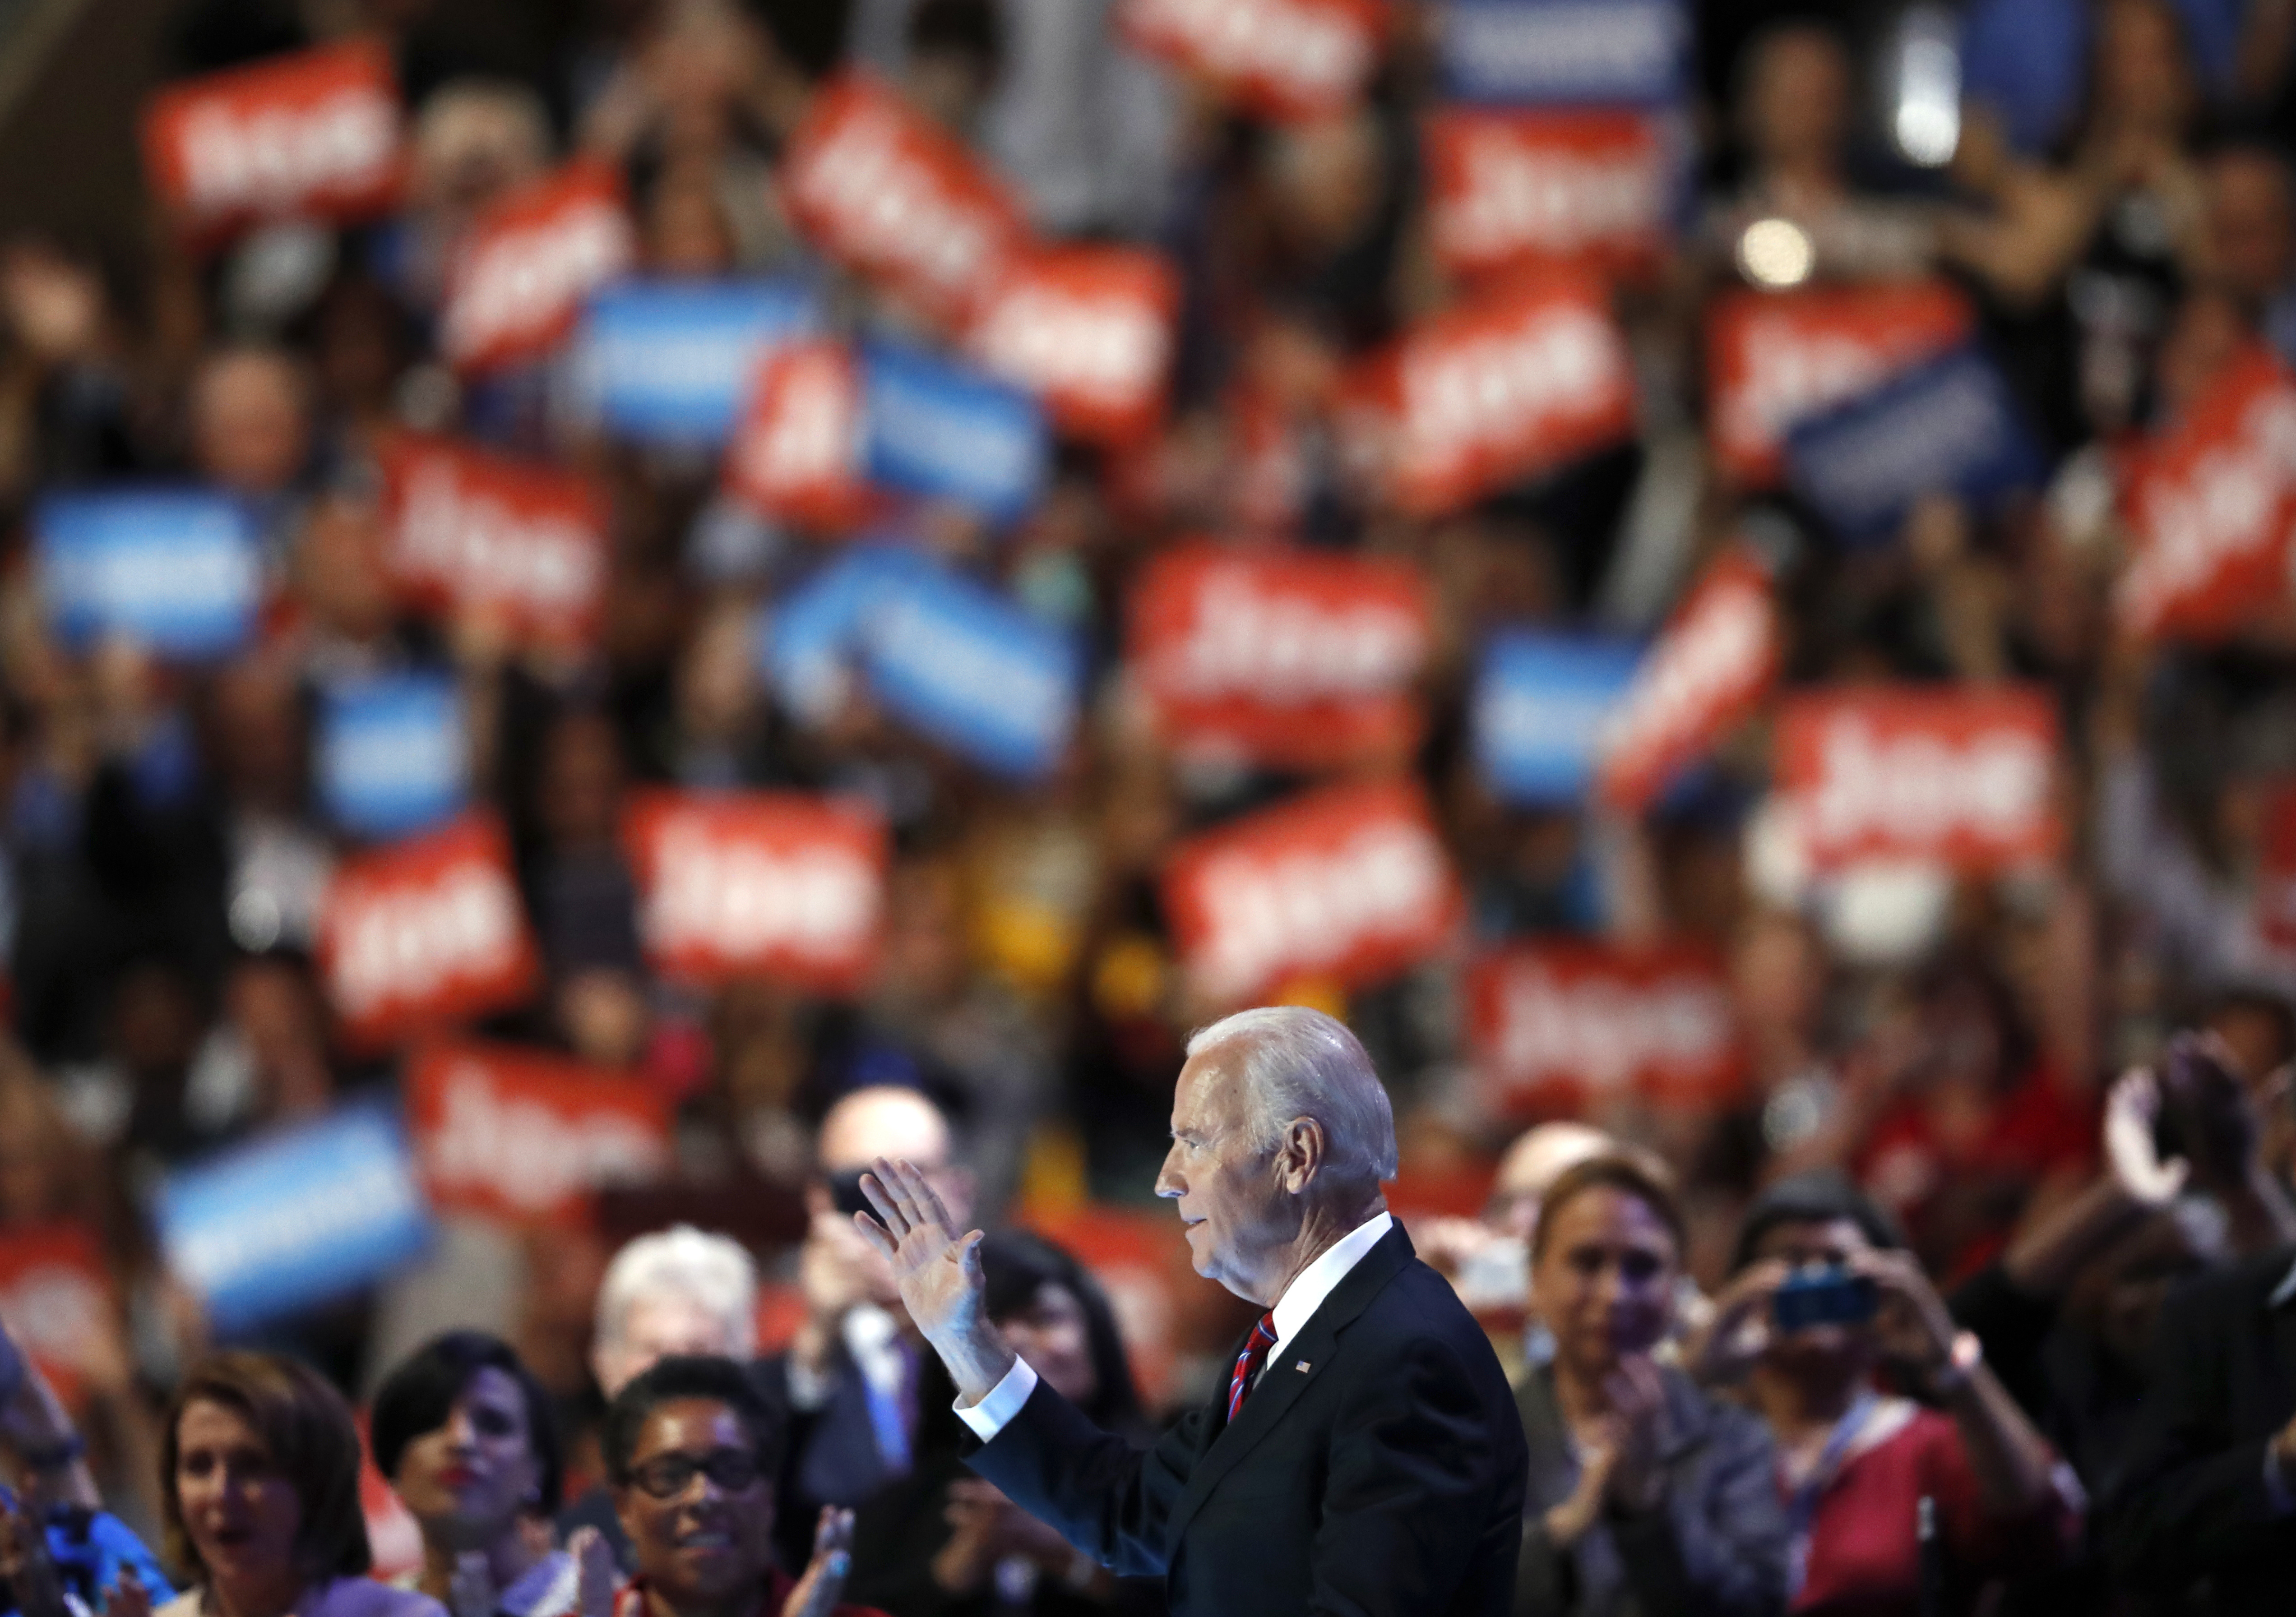 Joe Biden takes the stage during the third day of the Democratic National Convention in Philadelphia, on July 27, 2016.